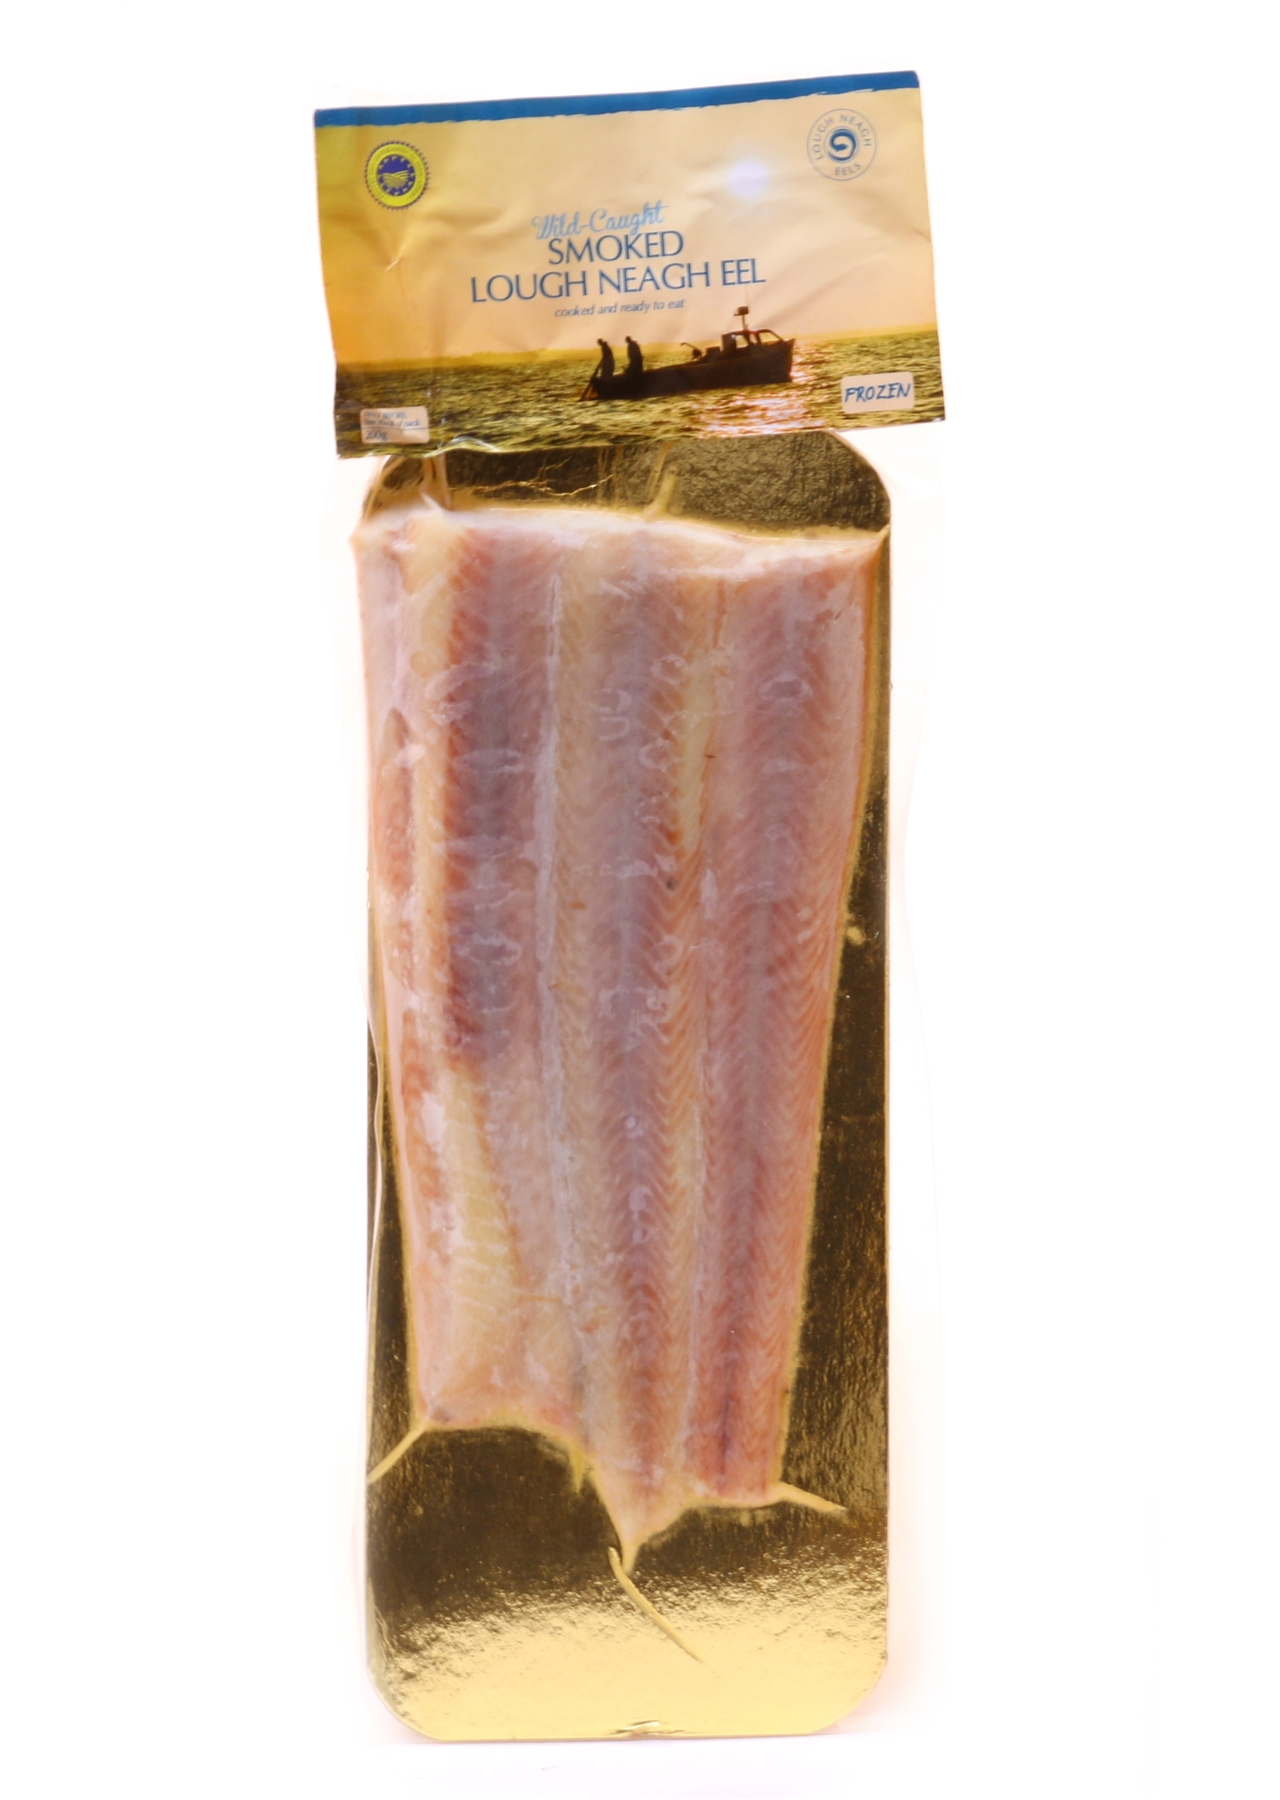 Lough Neagh Smoked Eel 200g.